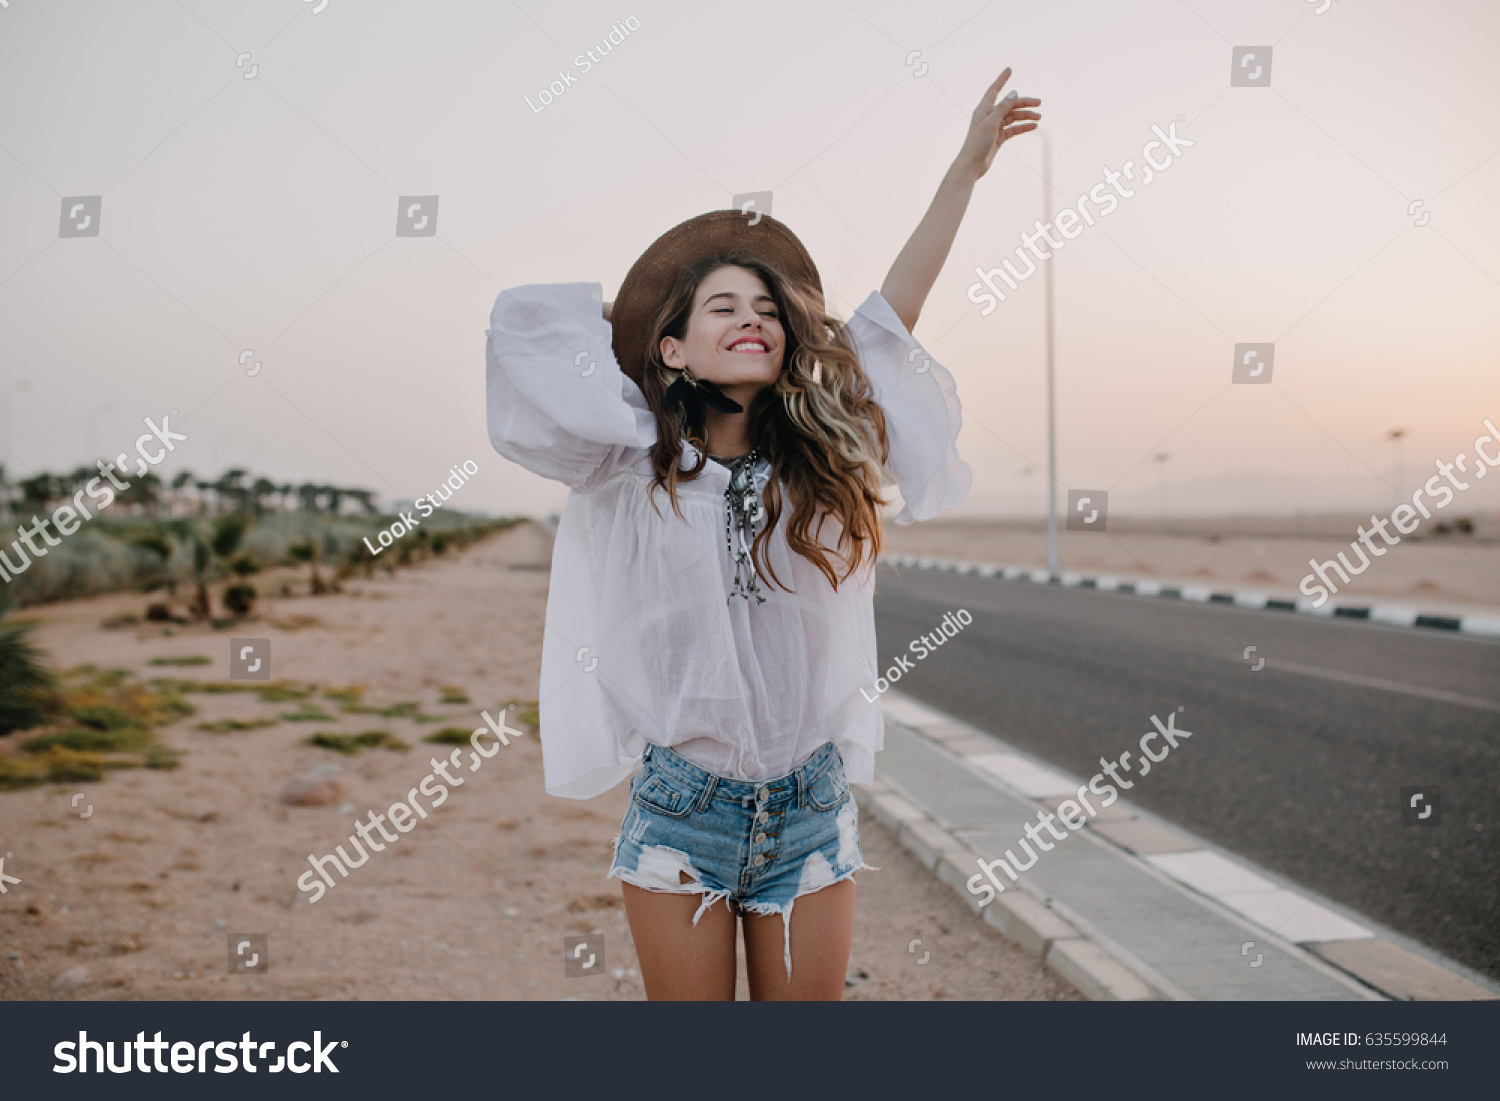 Smiling cheerful long-haired girl with curly hair breathes a full breast and enjoys freedom, standing next to road. Portrait of adorable young woman in white blouse and denim shorts having fun outside